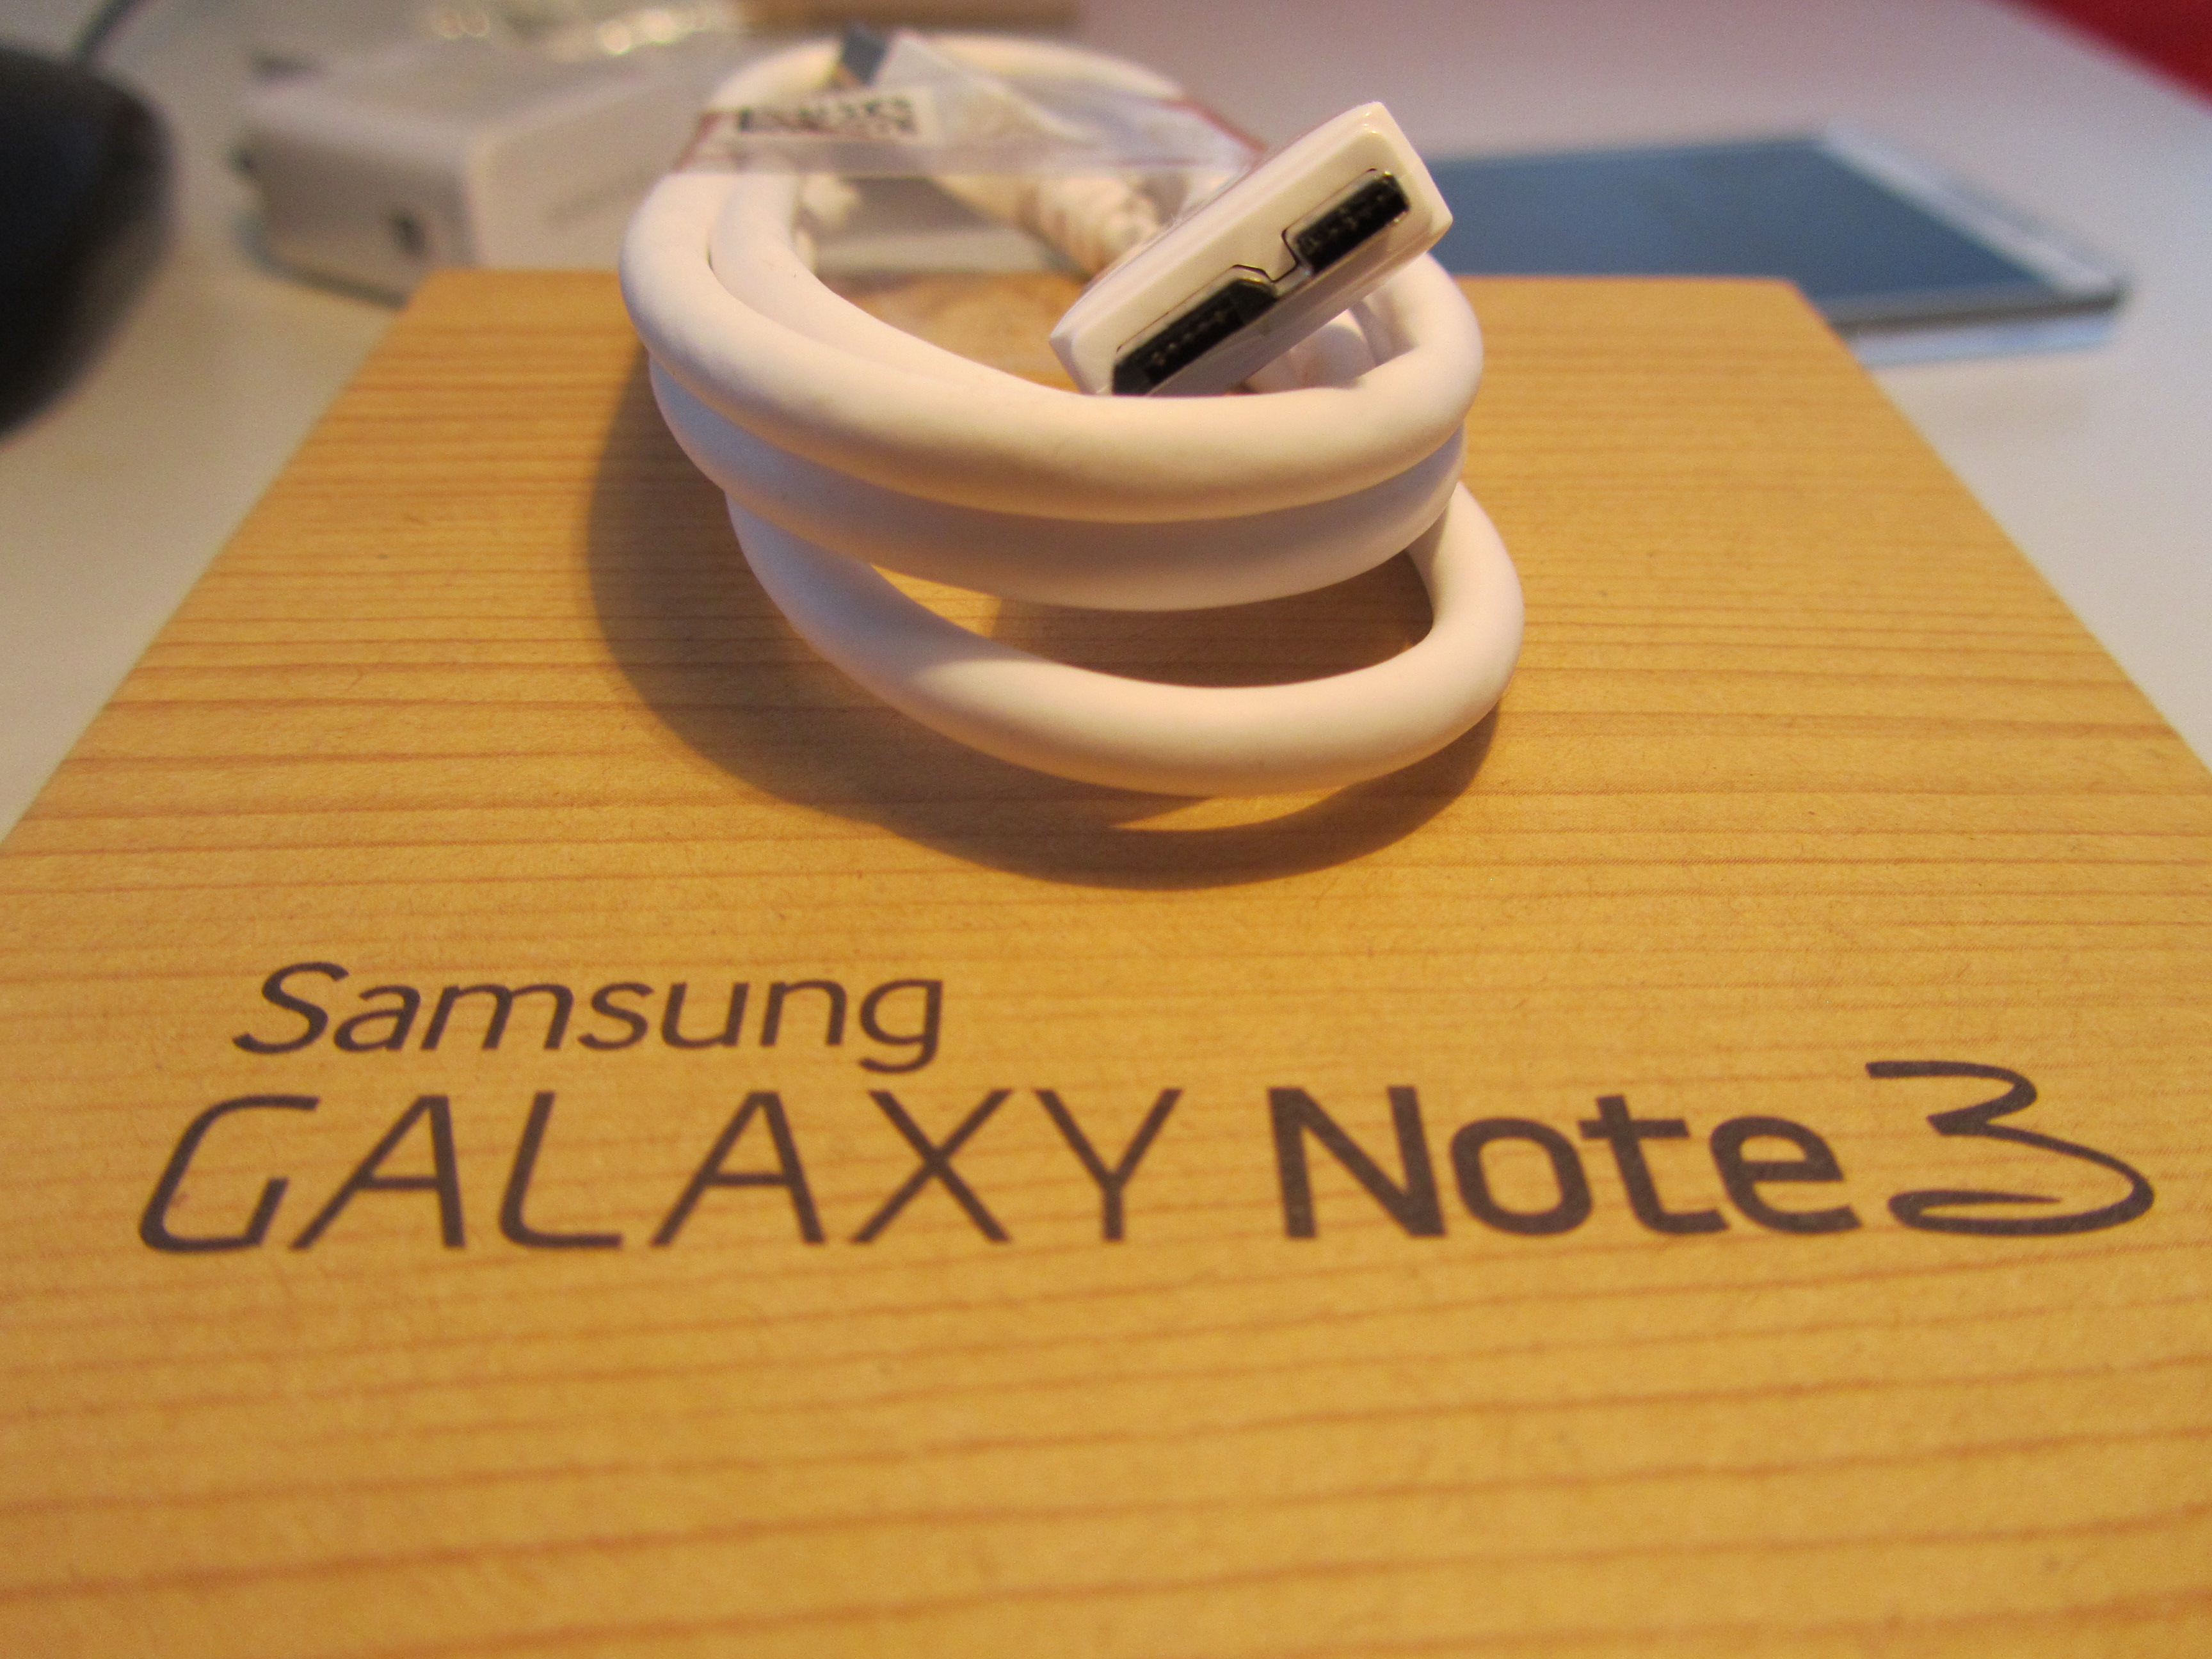 Note3 Charger Samsung Galaxy Note 3 review: One of the best Android handsets money can buy, if you can hold it